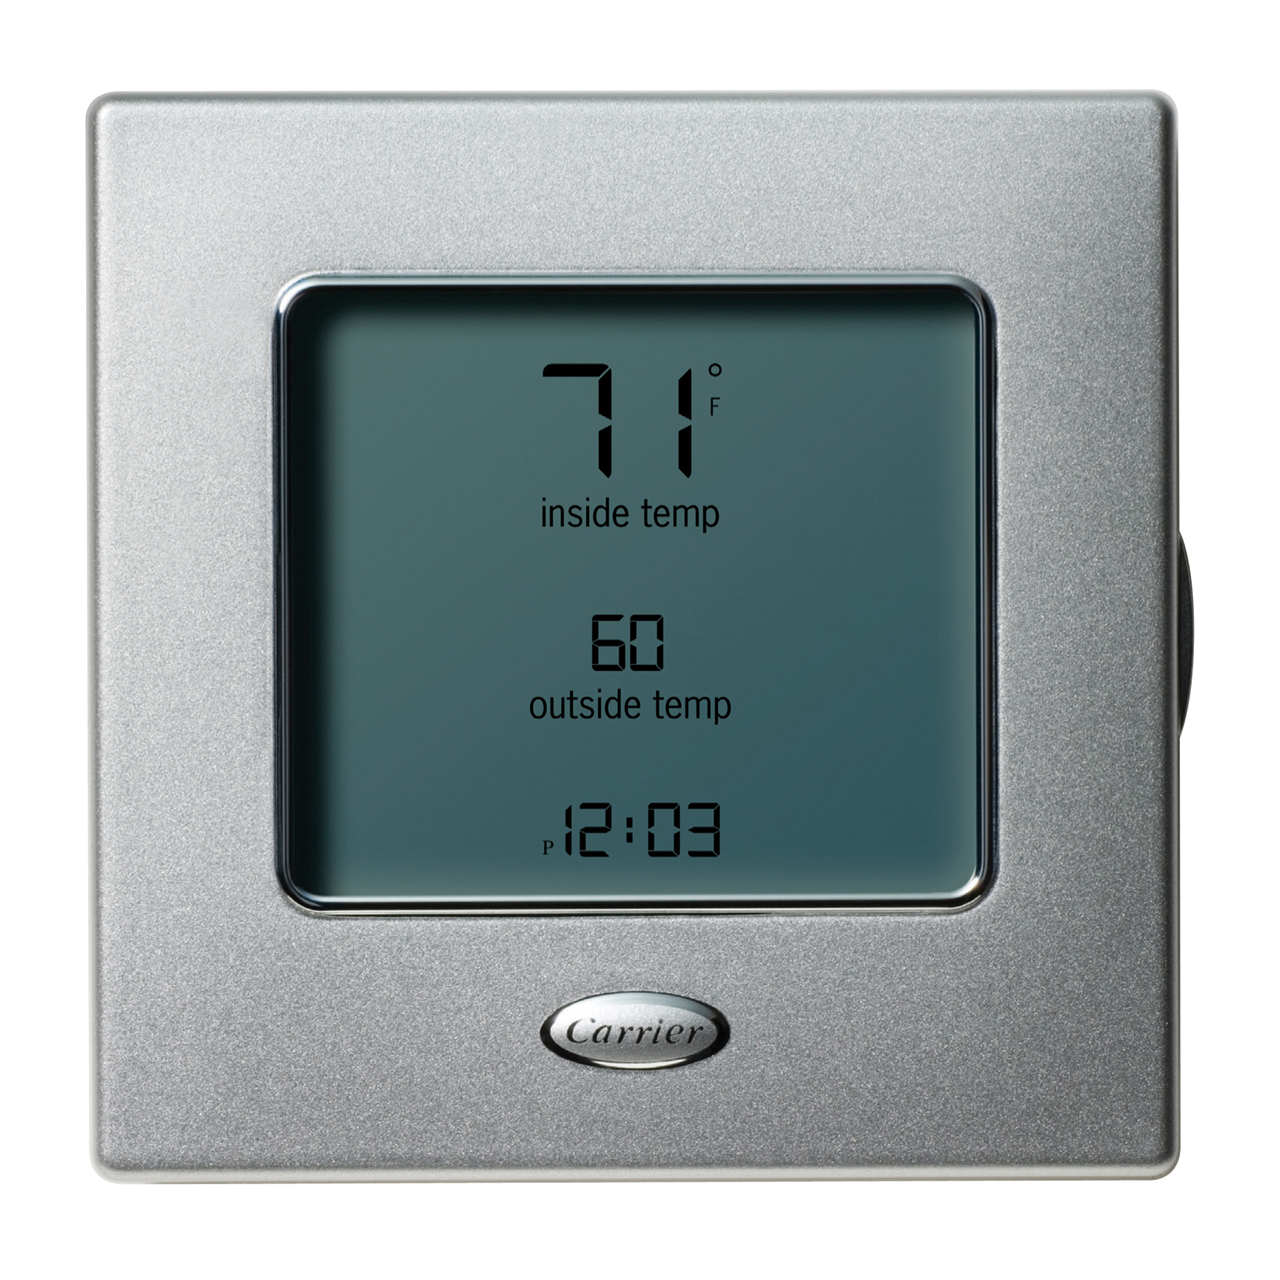 carrier-33CS2PPRH-03-commerical-non-communicating-programmable-thermostat-with-humidity-control